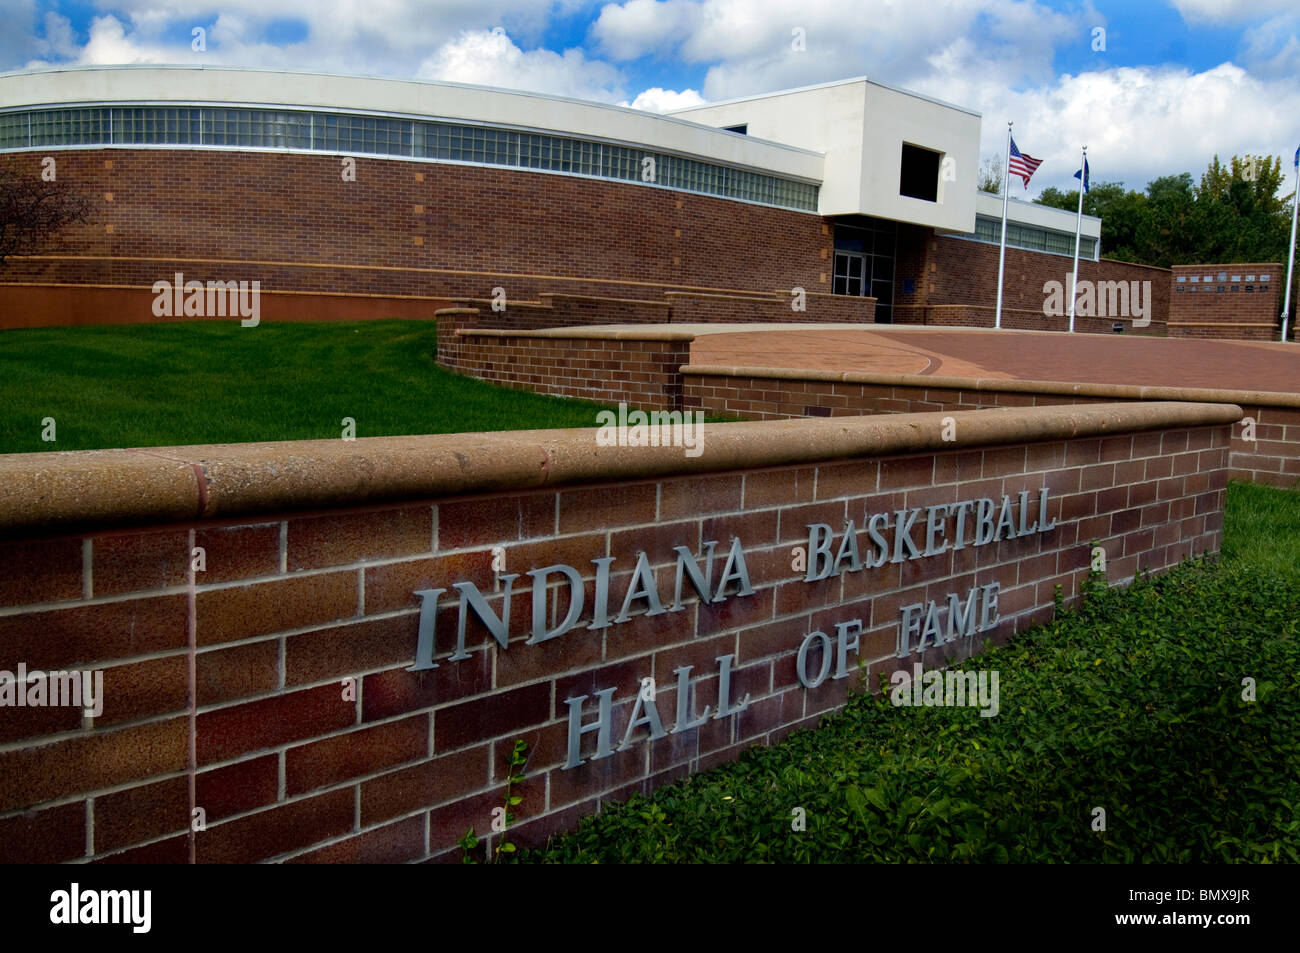 Indiana Basketball Hall of Fame in New Castle, Indiana Stockbild